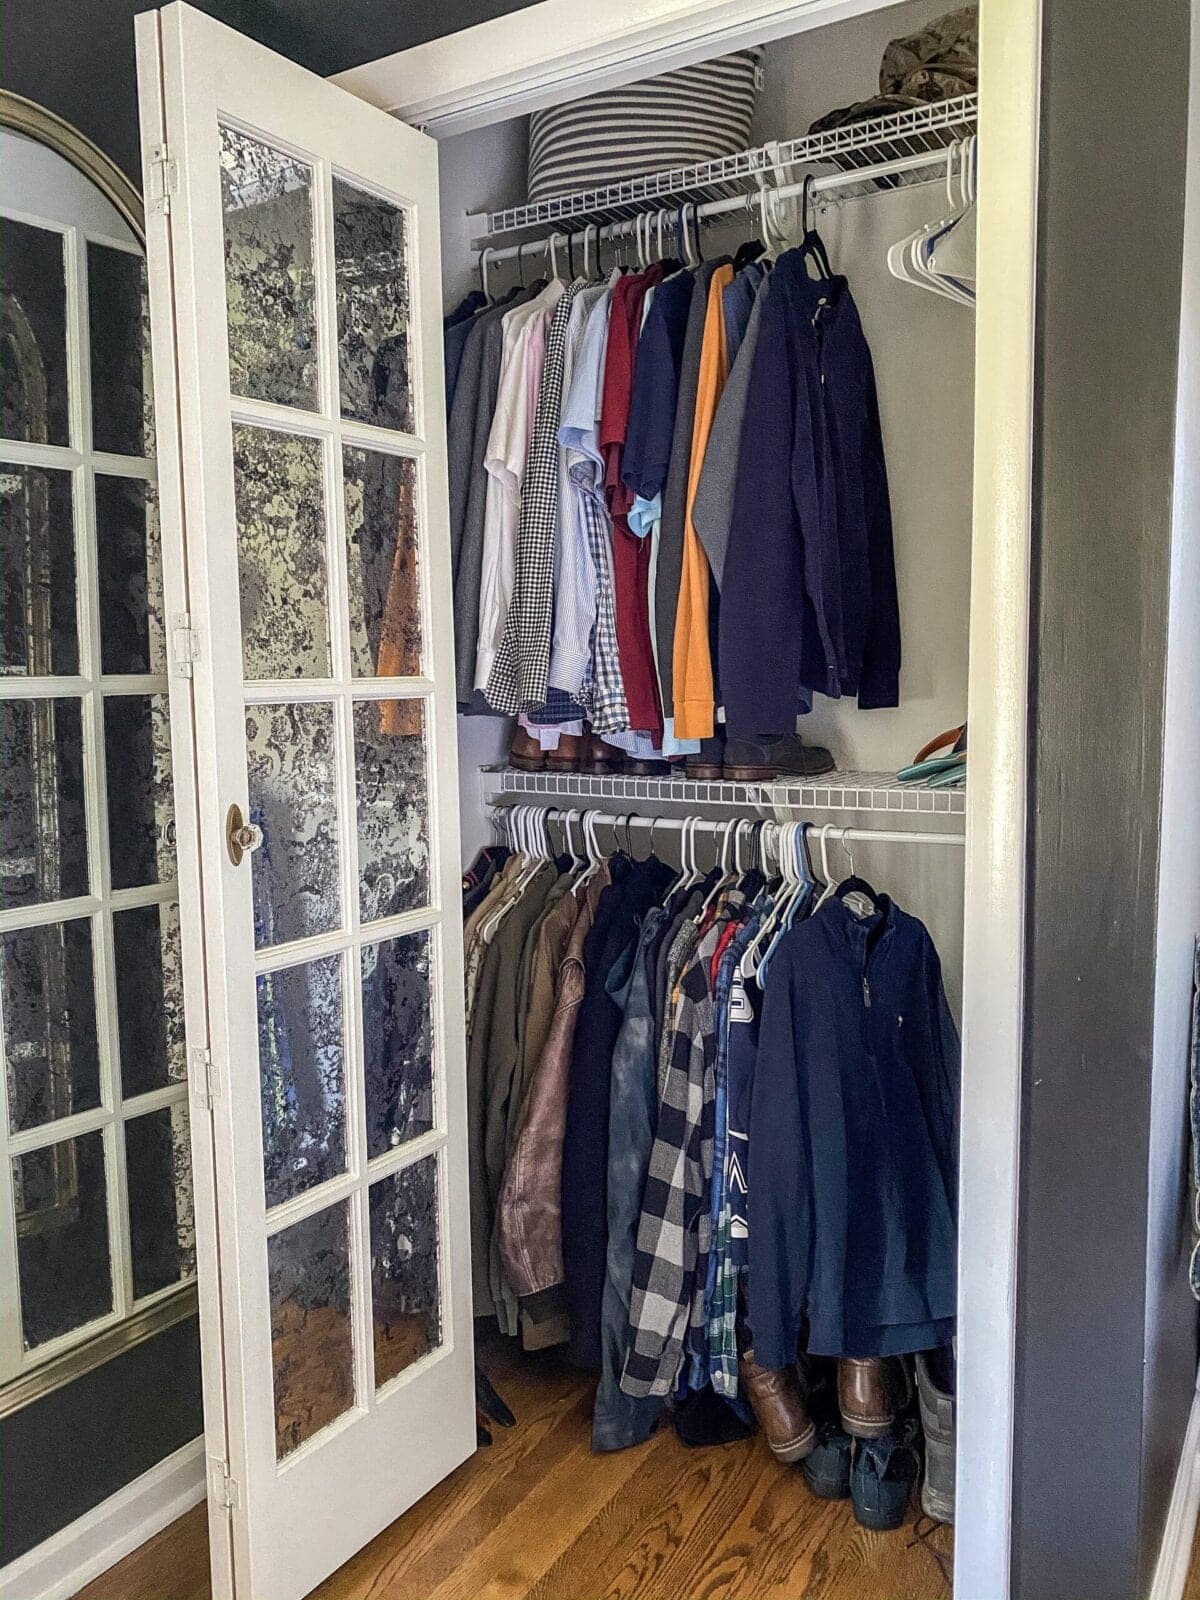 IKEA Closets Using Billy Bookcases | A step-by-step tutorial and budget breakdown for using IKEA Billy bookcases to customize his & her closets in a master bedroom.